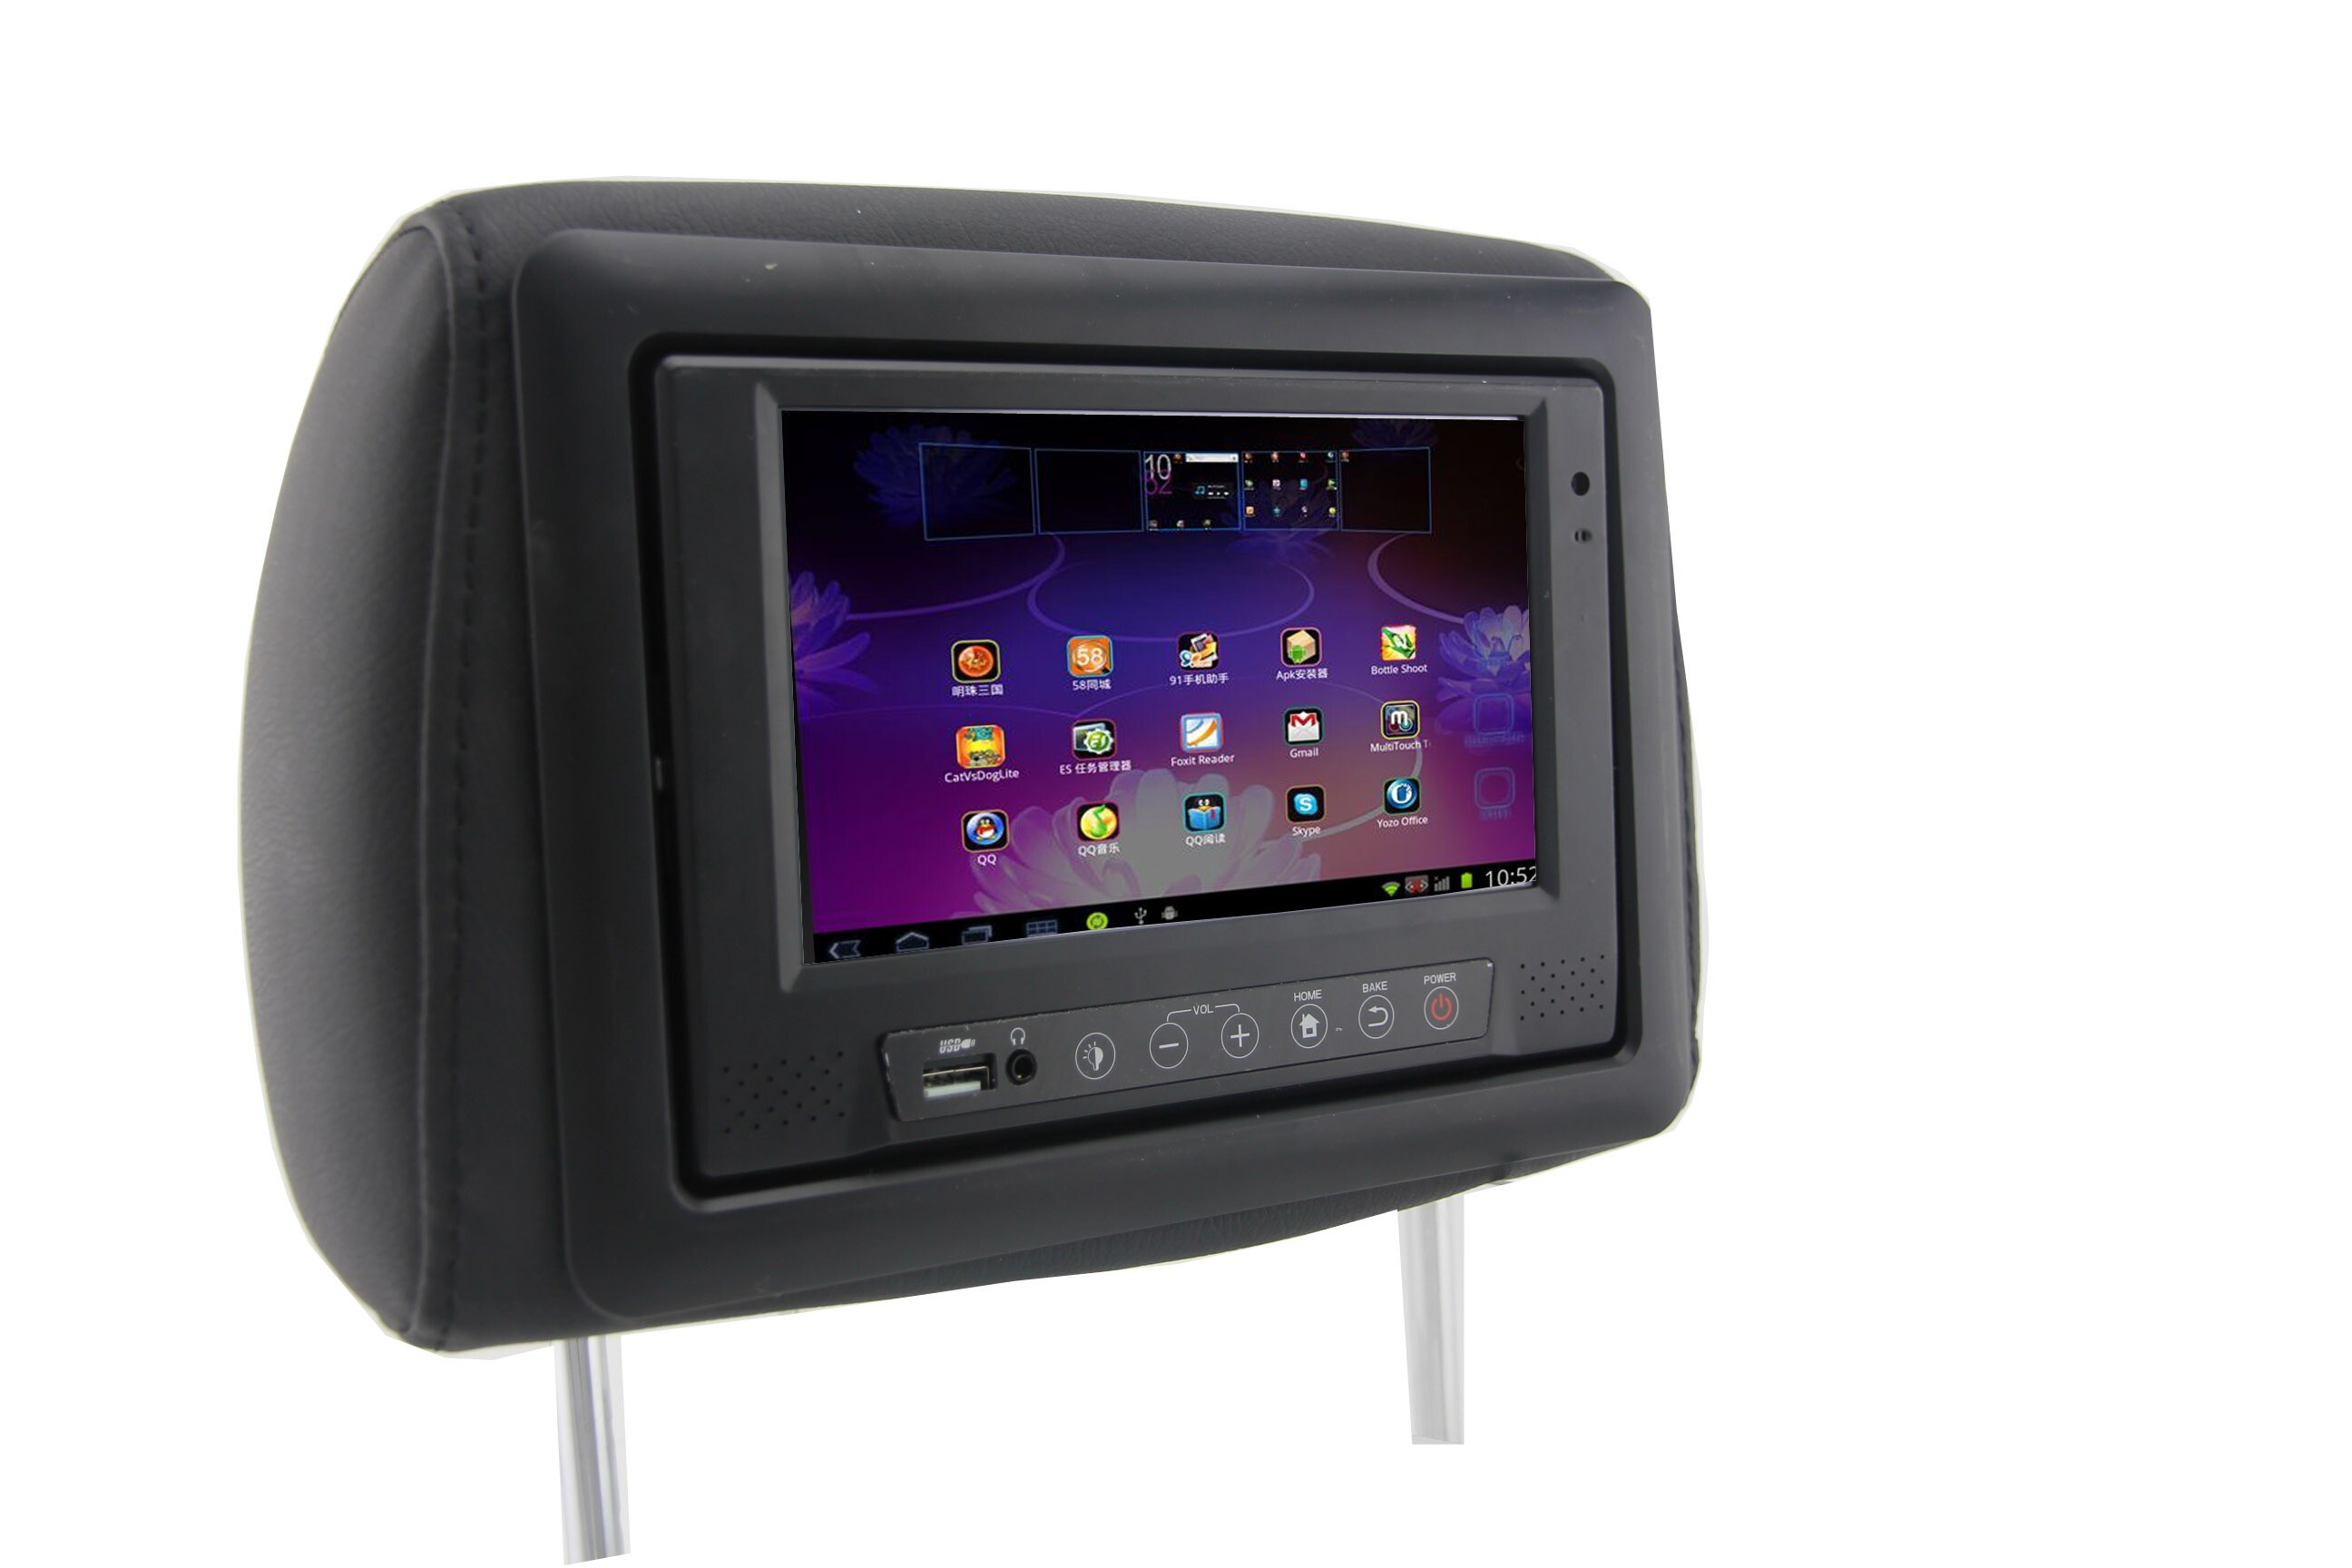 7 Inch Headrest Android Car PC with 3G, GPS Optional